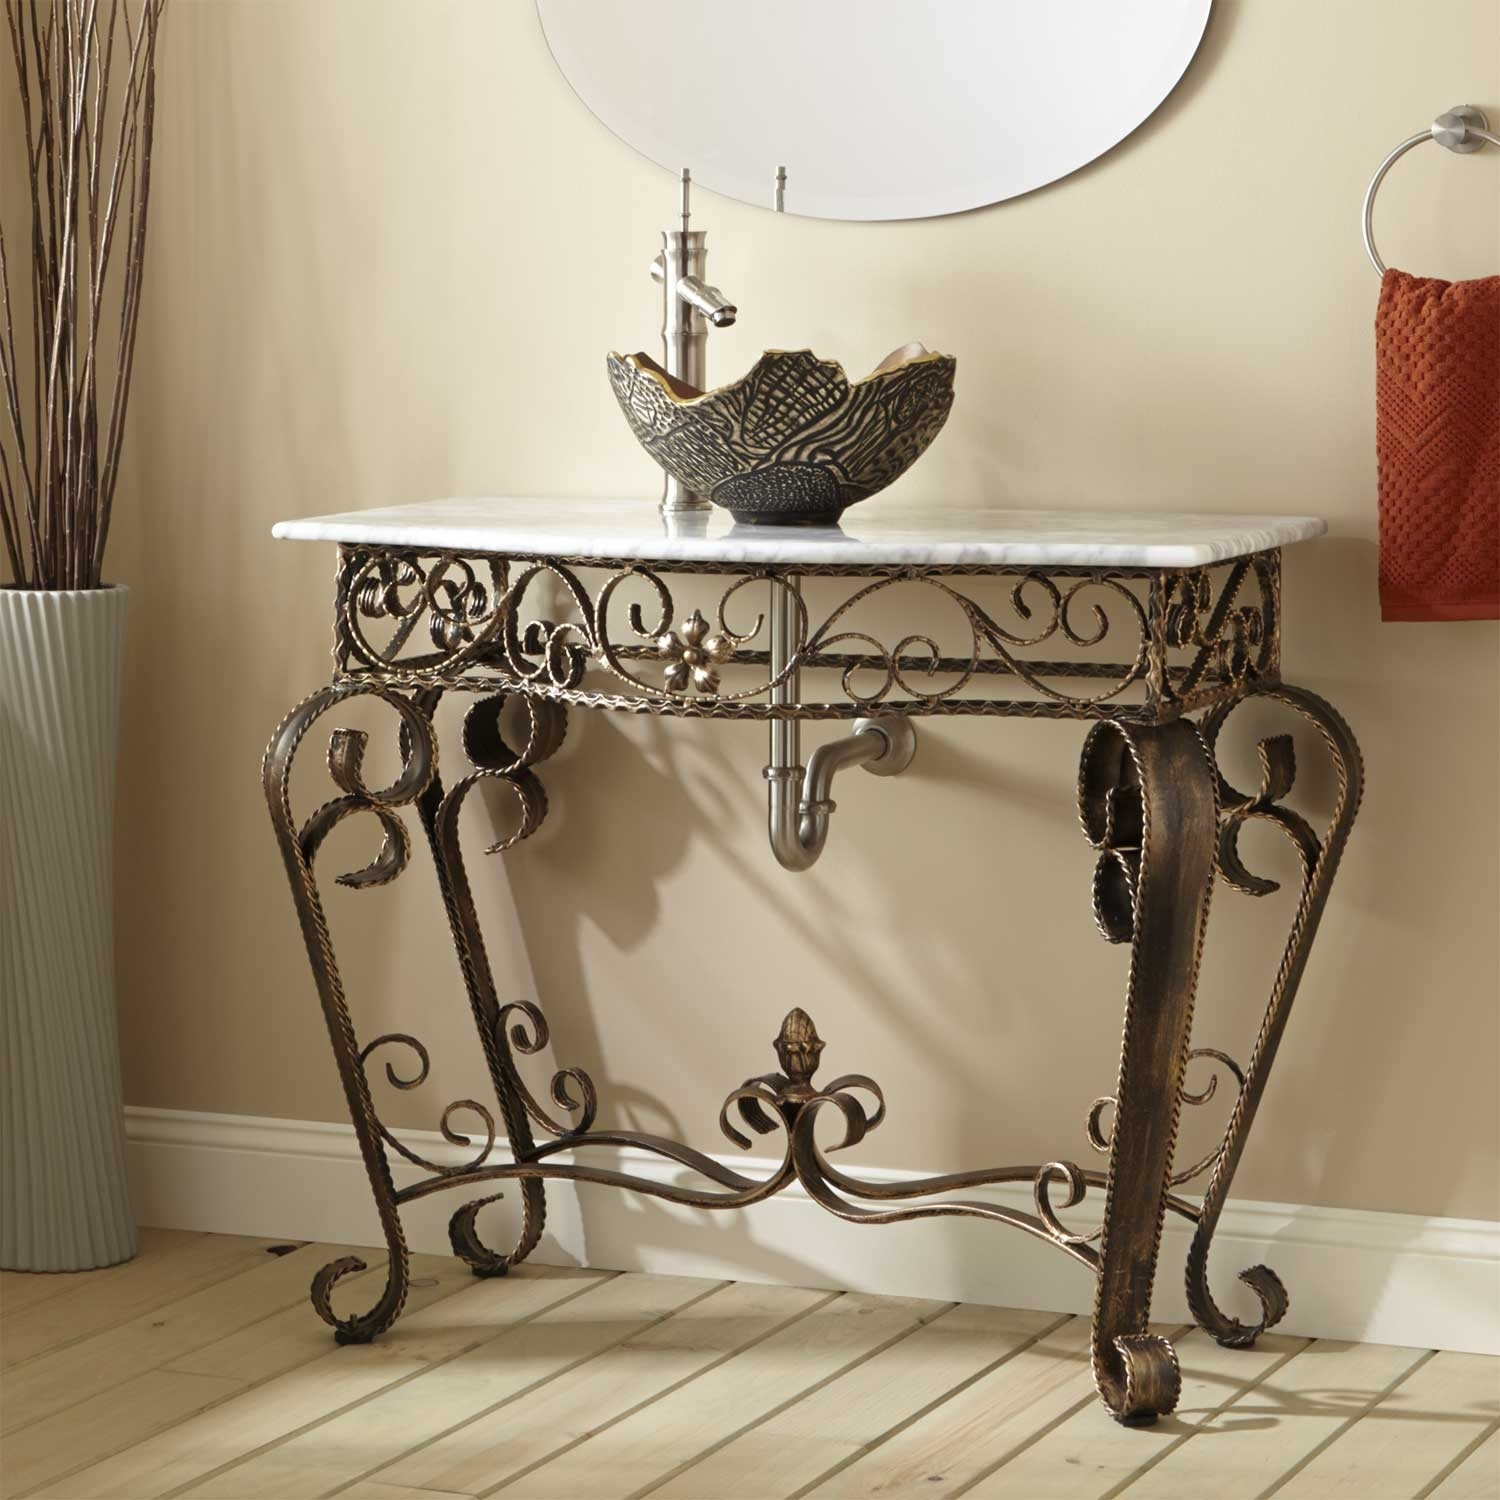 Genial Wrought Iron Bathroom Vanity Stand1500 X 1500